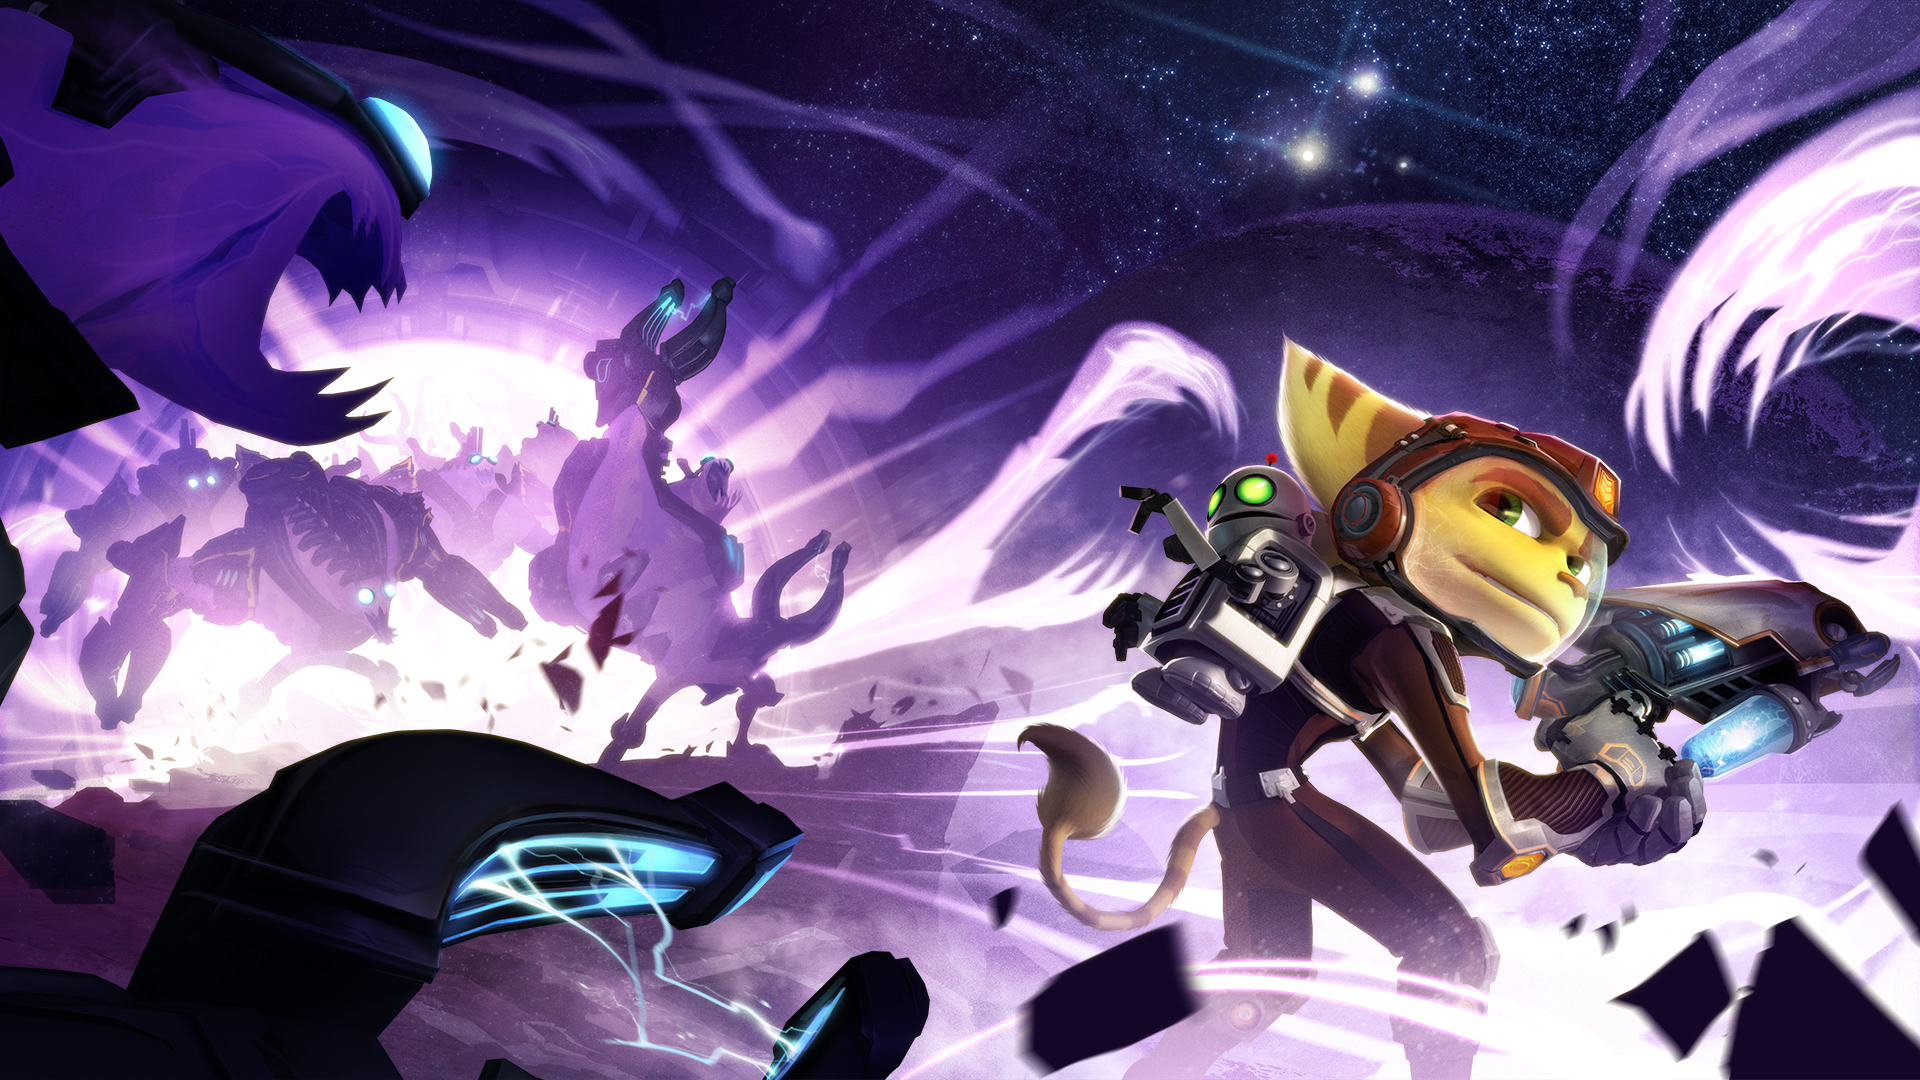 Ratchet Clank Into The Nexus Hd Wallpaper Background Image